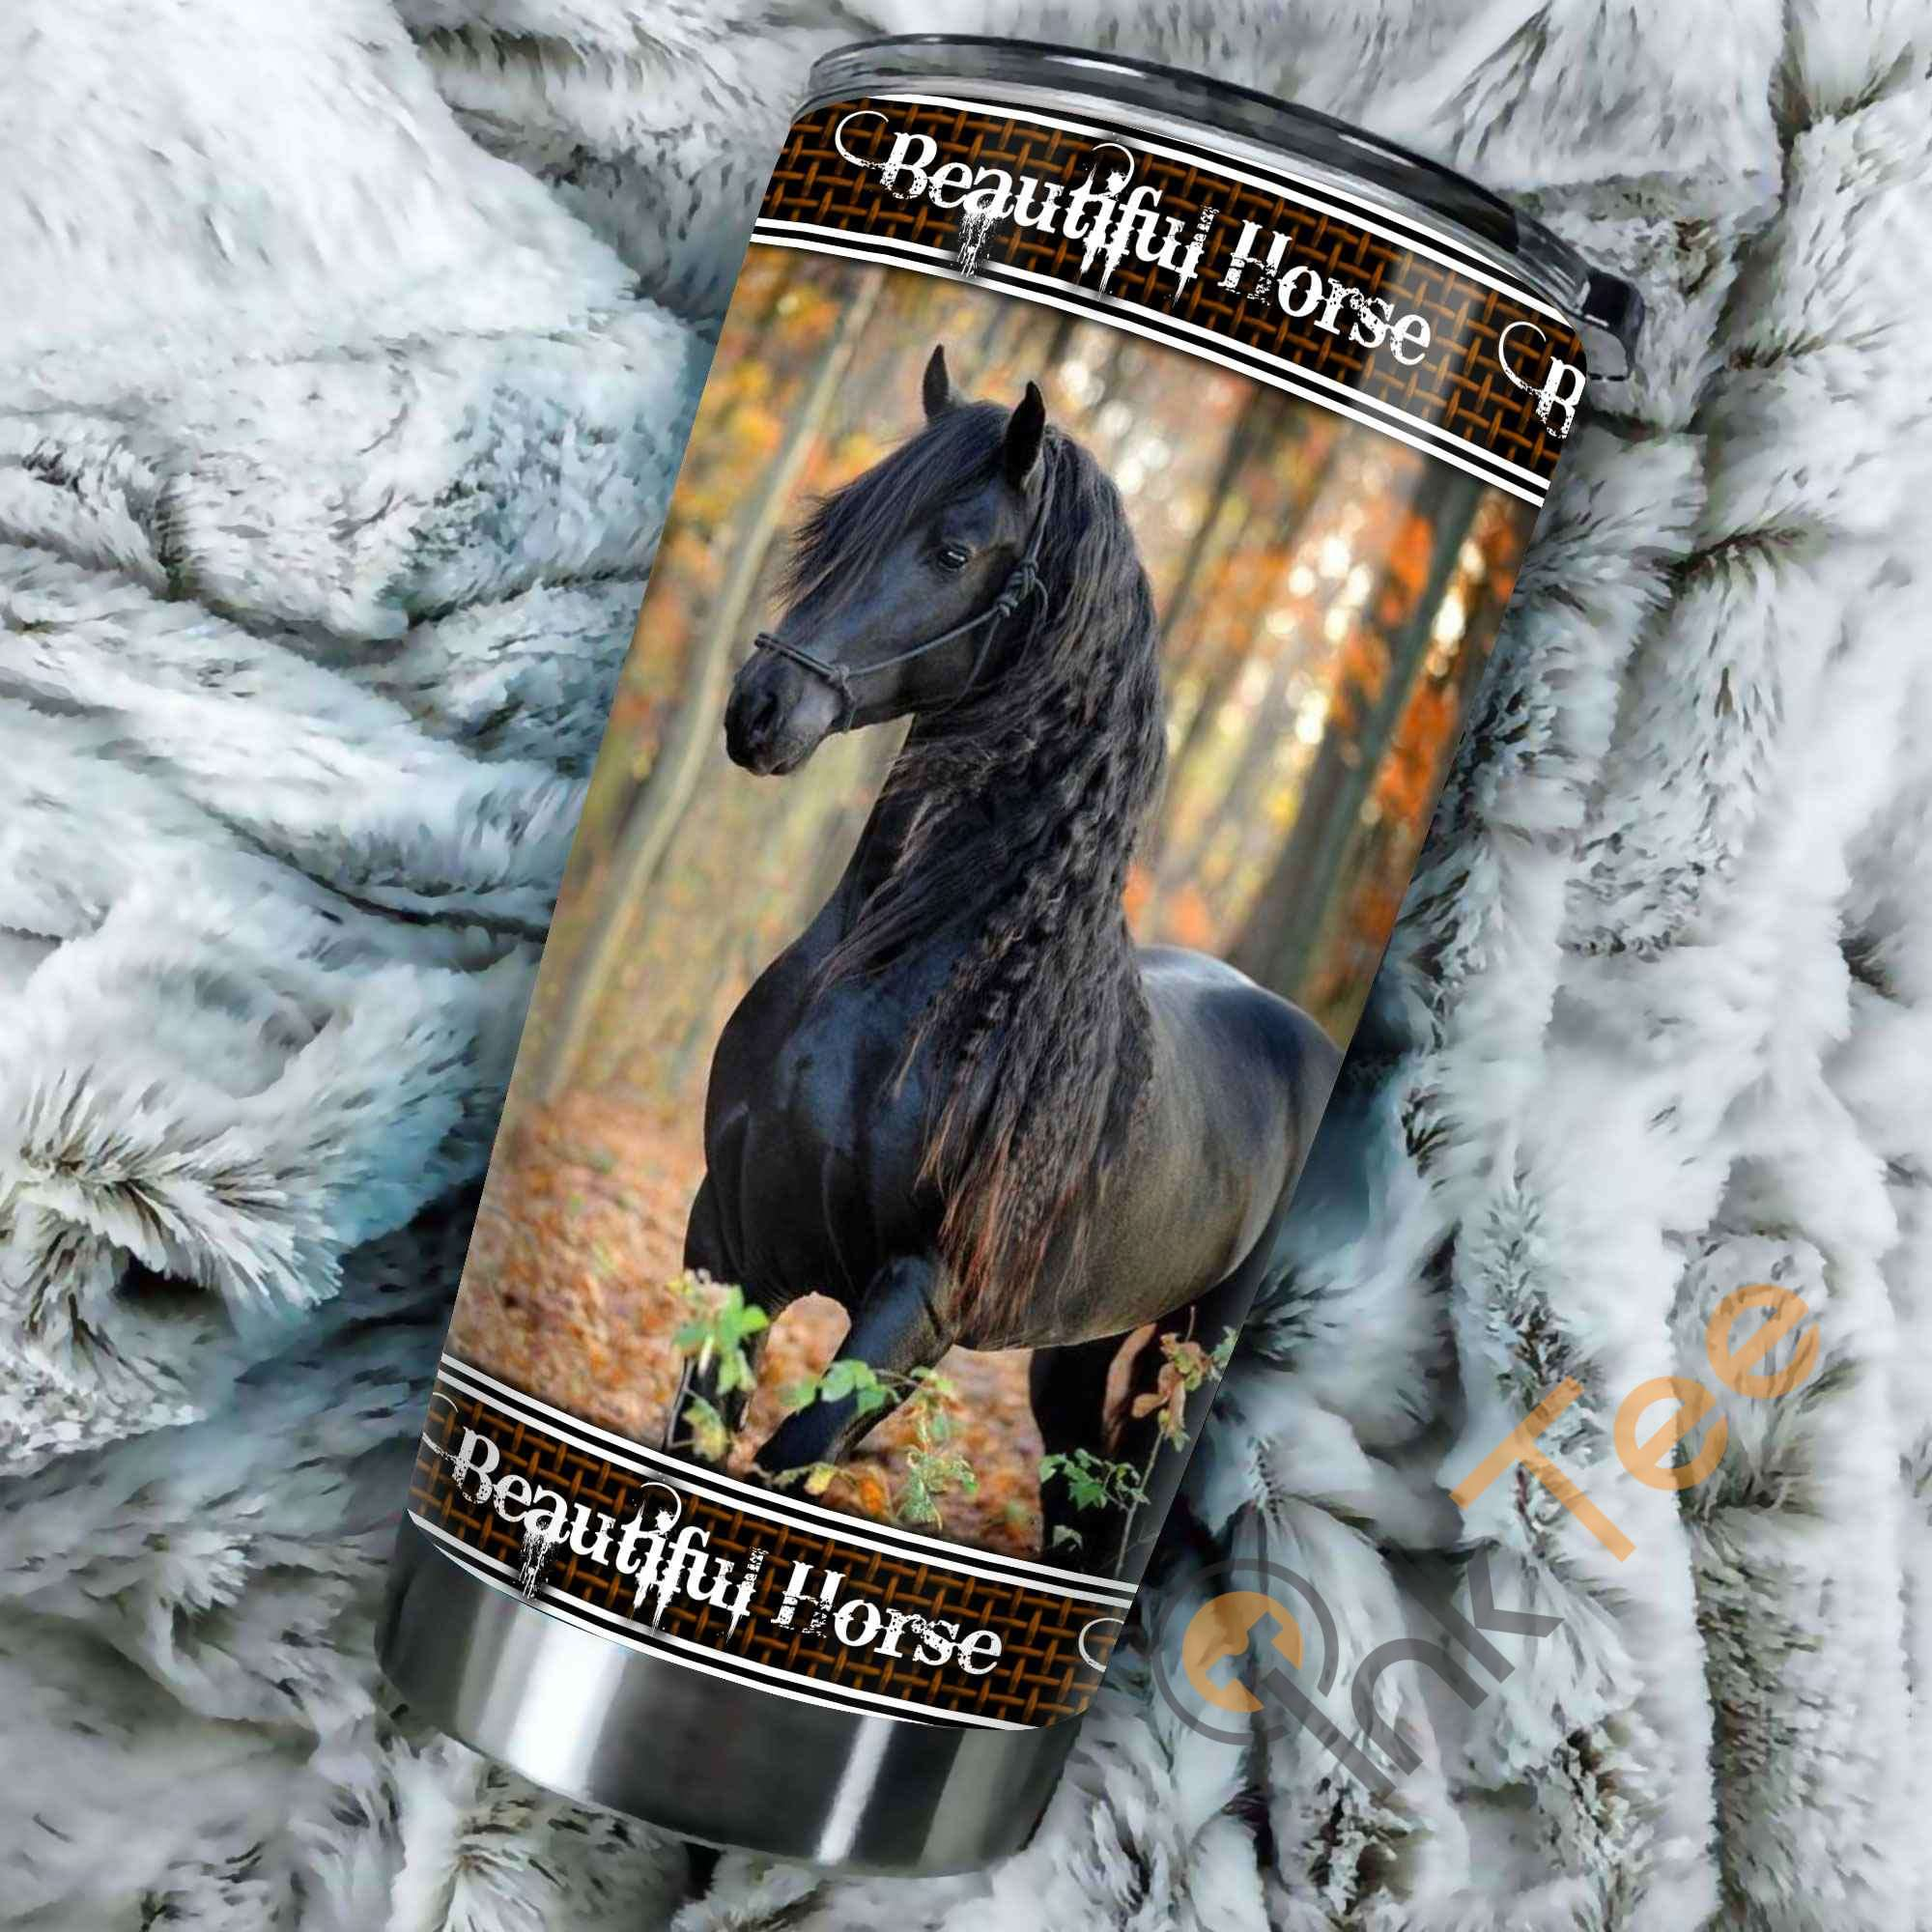 Beautiful Horse Amazon Best Seller Sku 3514 Stainless Steel Tumbler